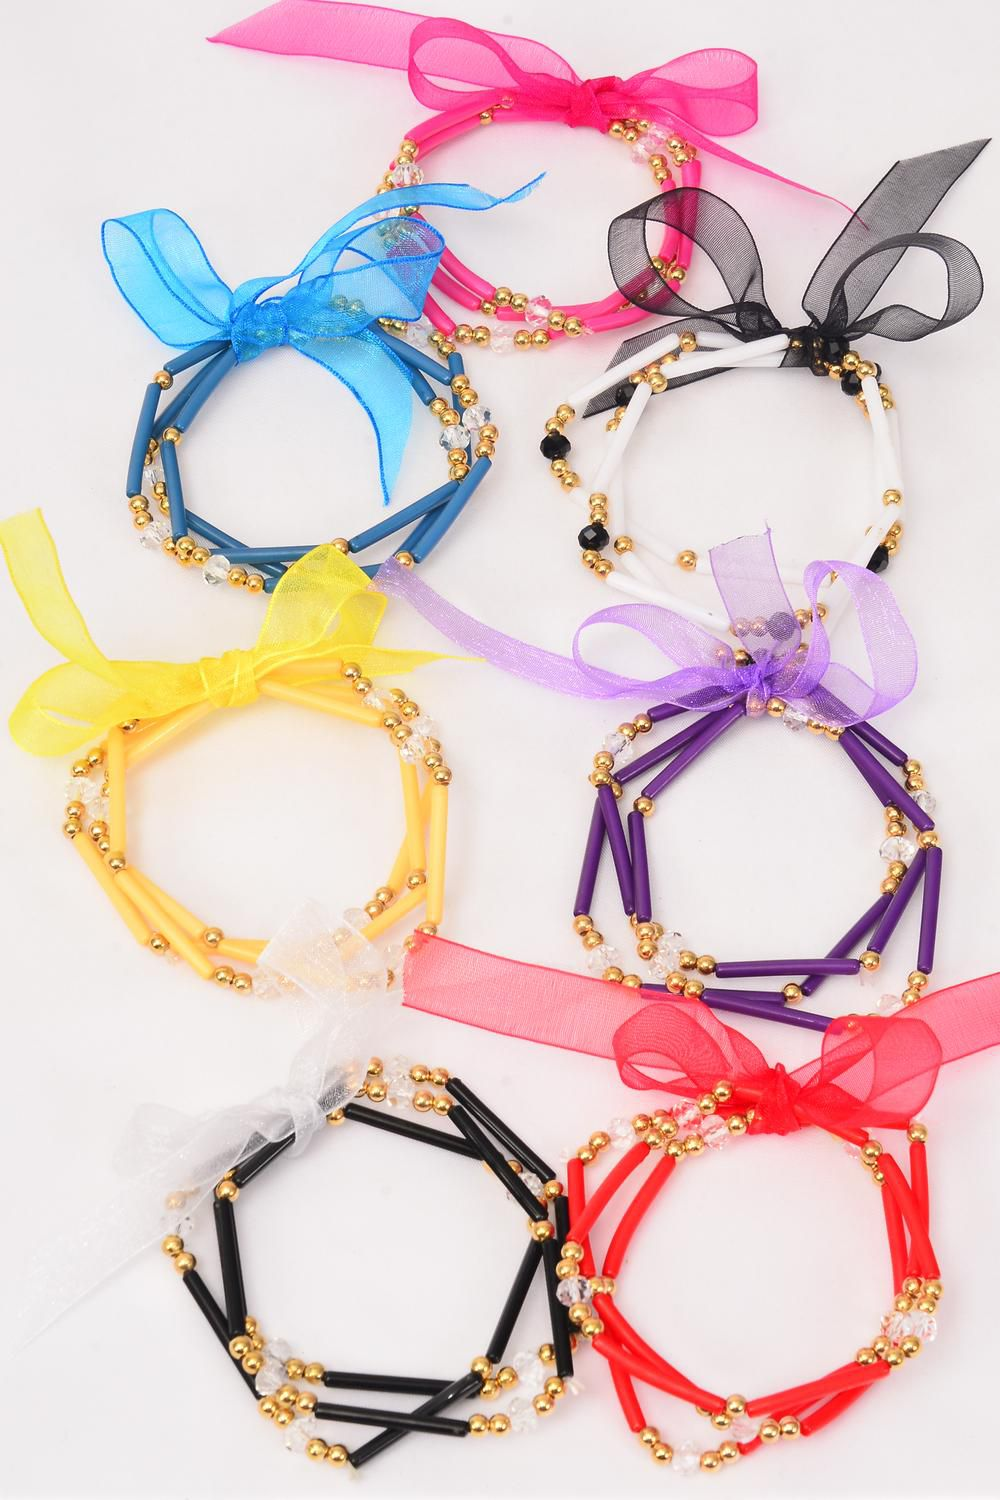 Bracelet 3 Strend Beads & Glass Crystal  Mix Ribbons/DZ **Stretch** 2 Blue,2 Black,2 White,2 Fuchsia,2 Red,1 Purple,1 Yellow,7 Color Asst,Hang tag & OPP bag & UPC Code -